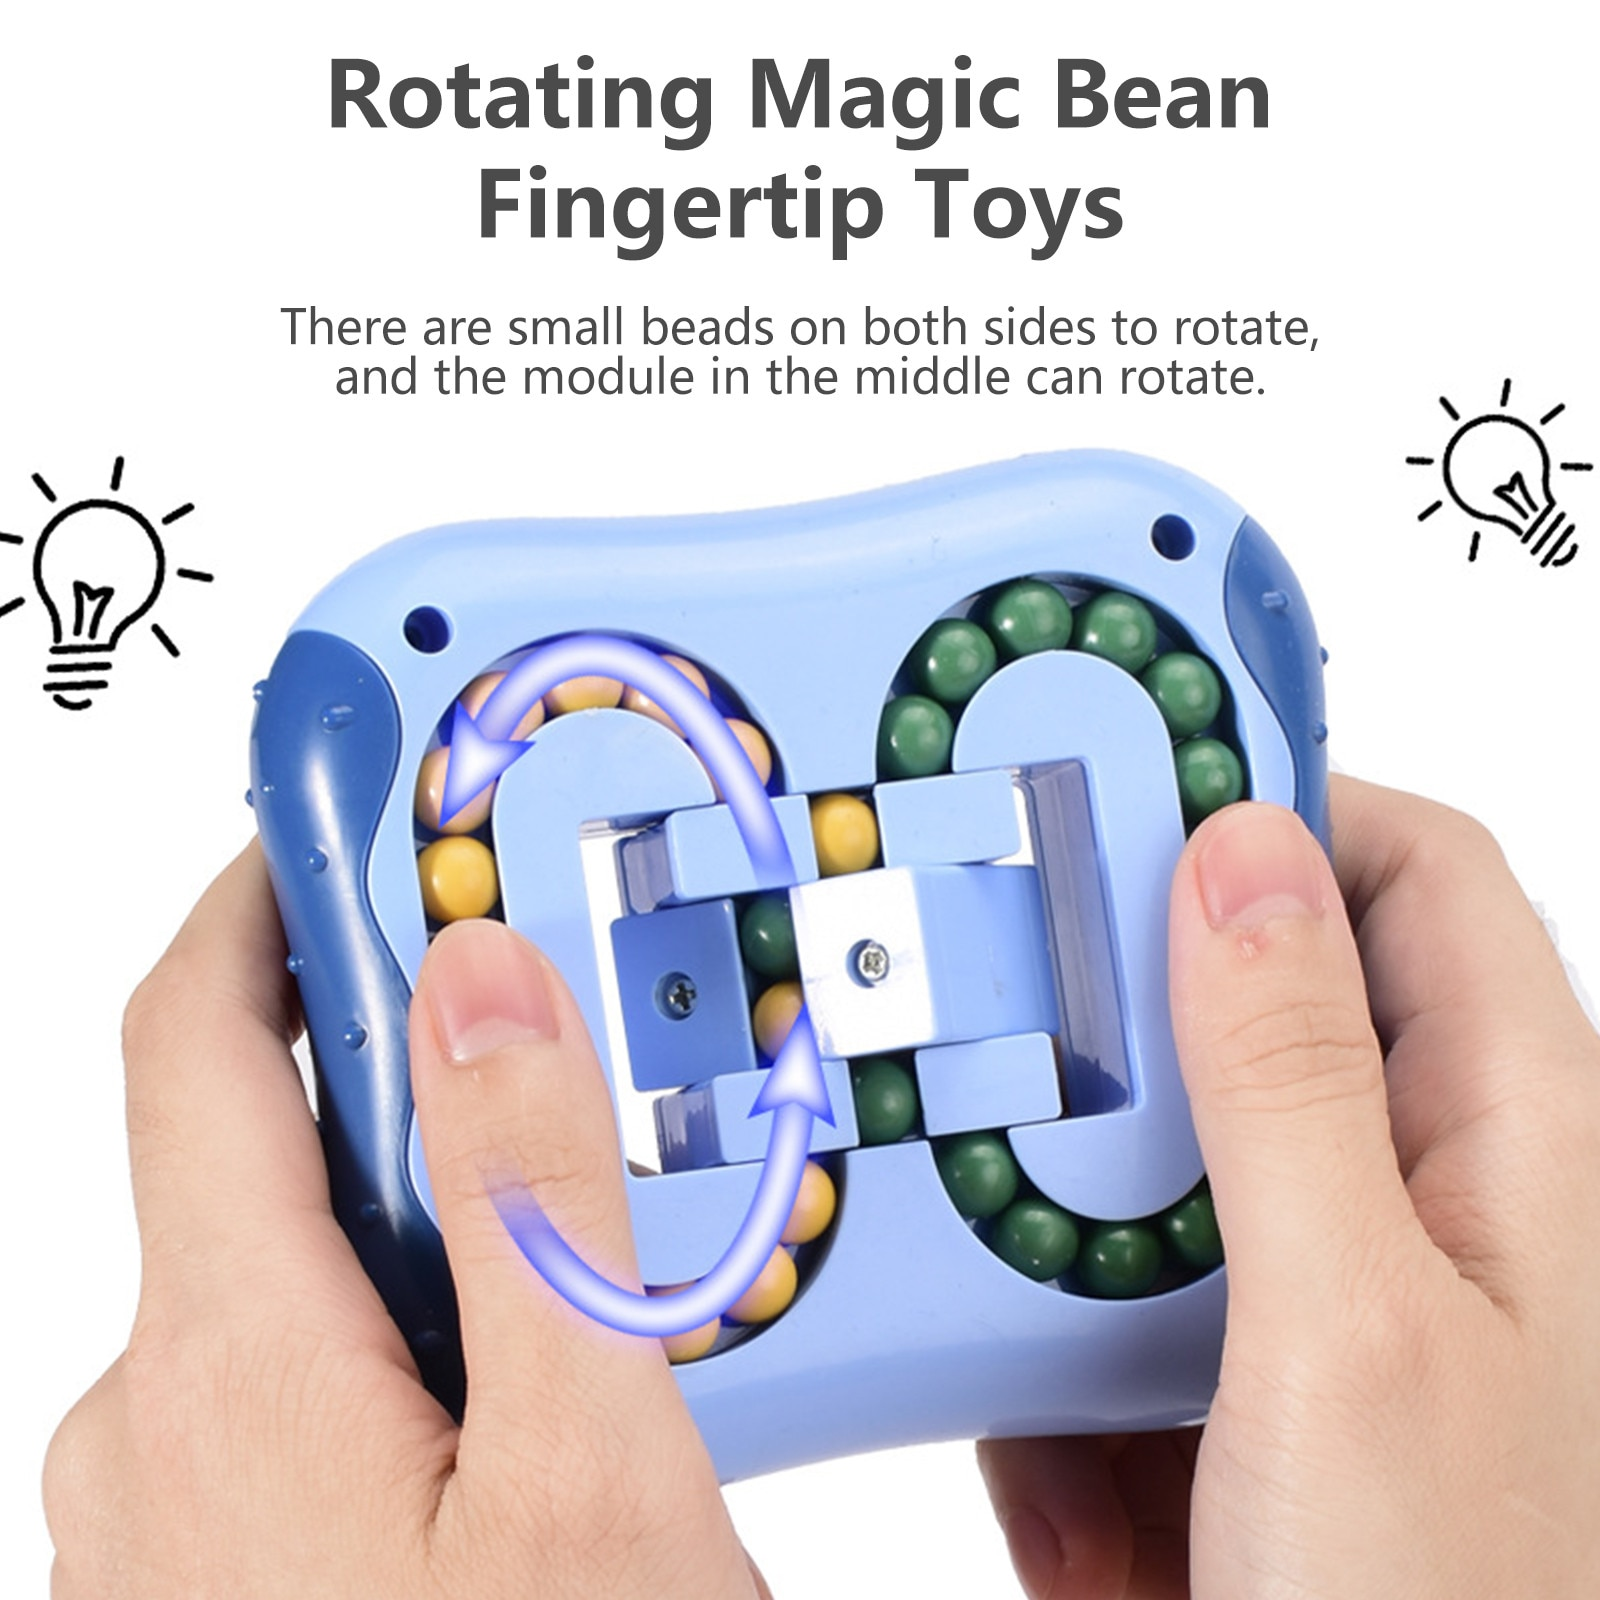 Fidget Toys Iq Brain Teaser Puzzle Rotating Magic Be-an Fingertip Toy Stress Relief Toys for Kids and Adult Stress антистресс W* enlarge